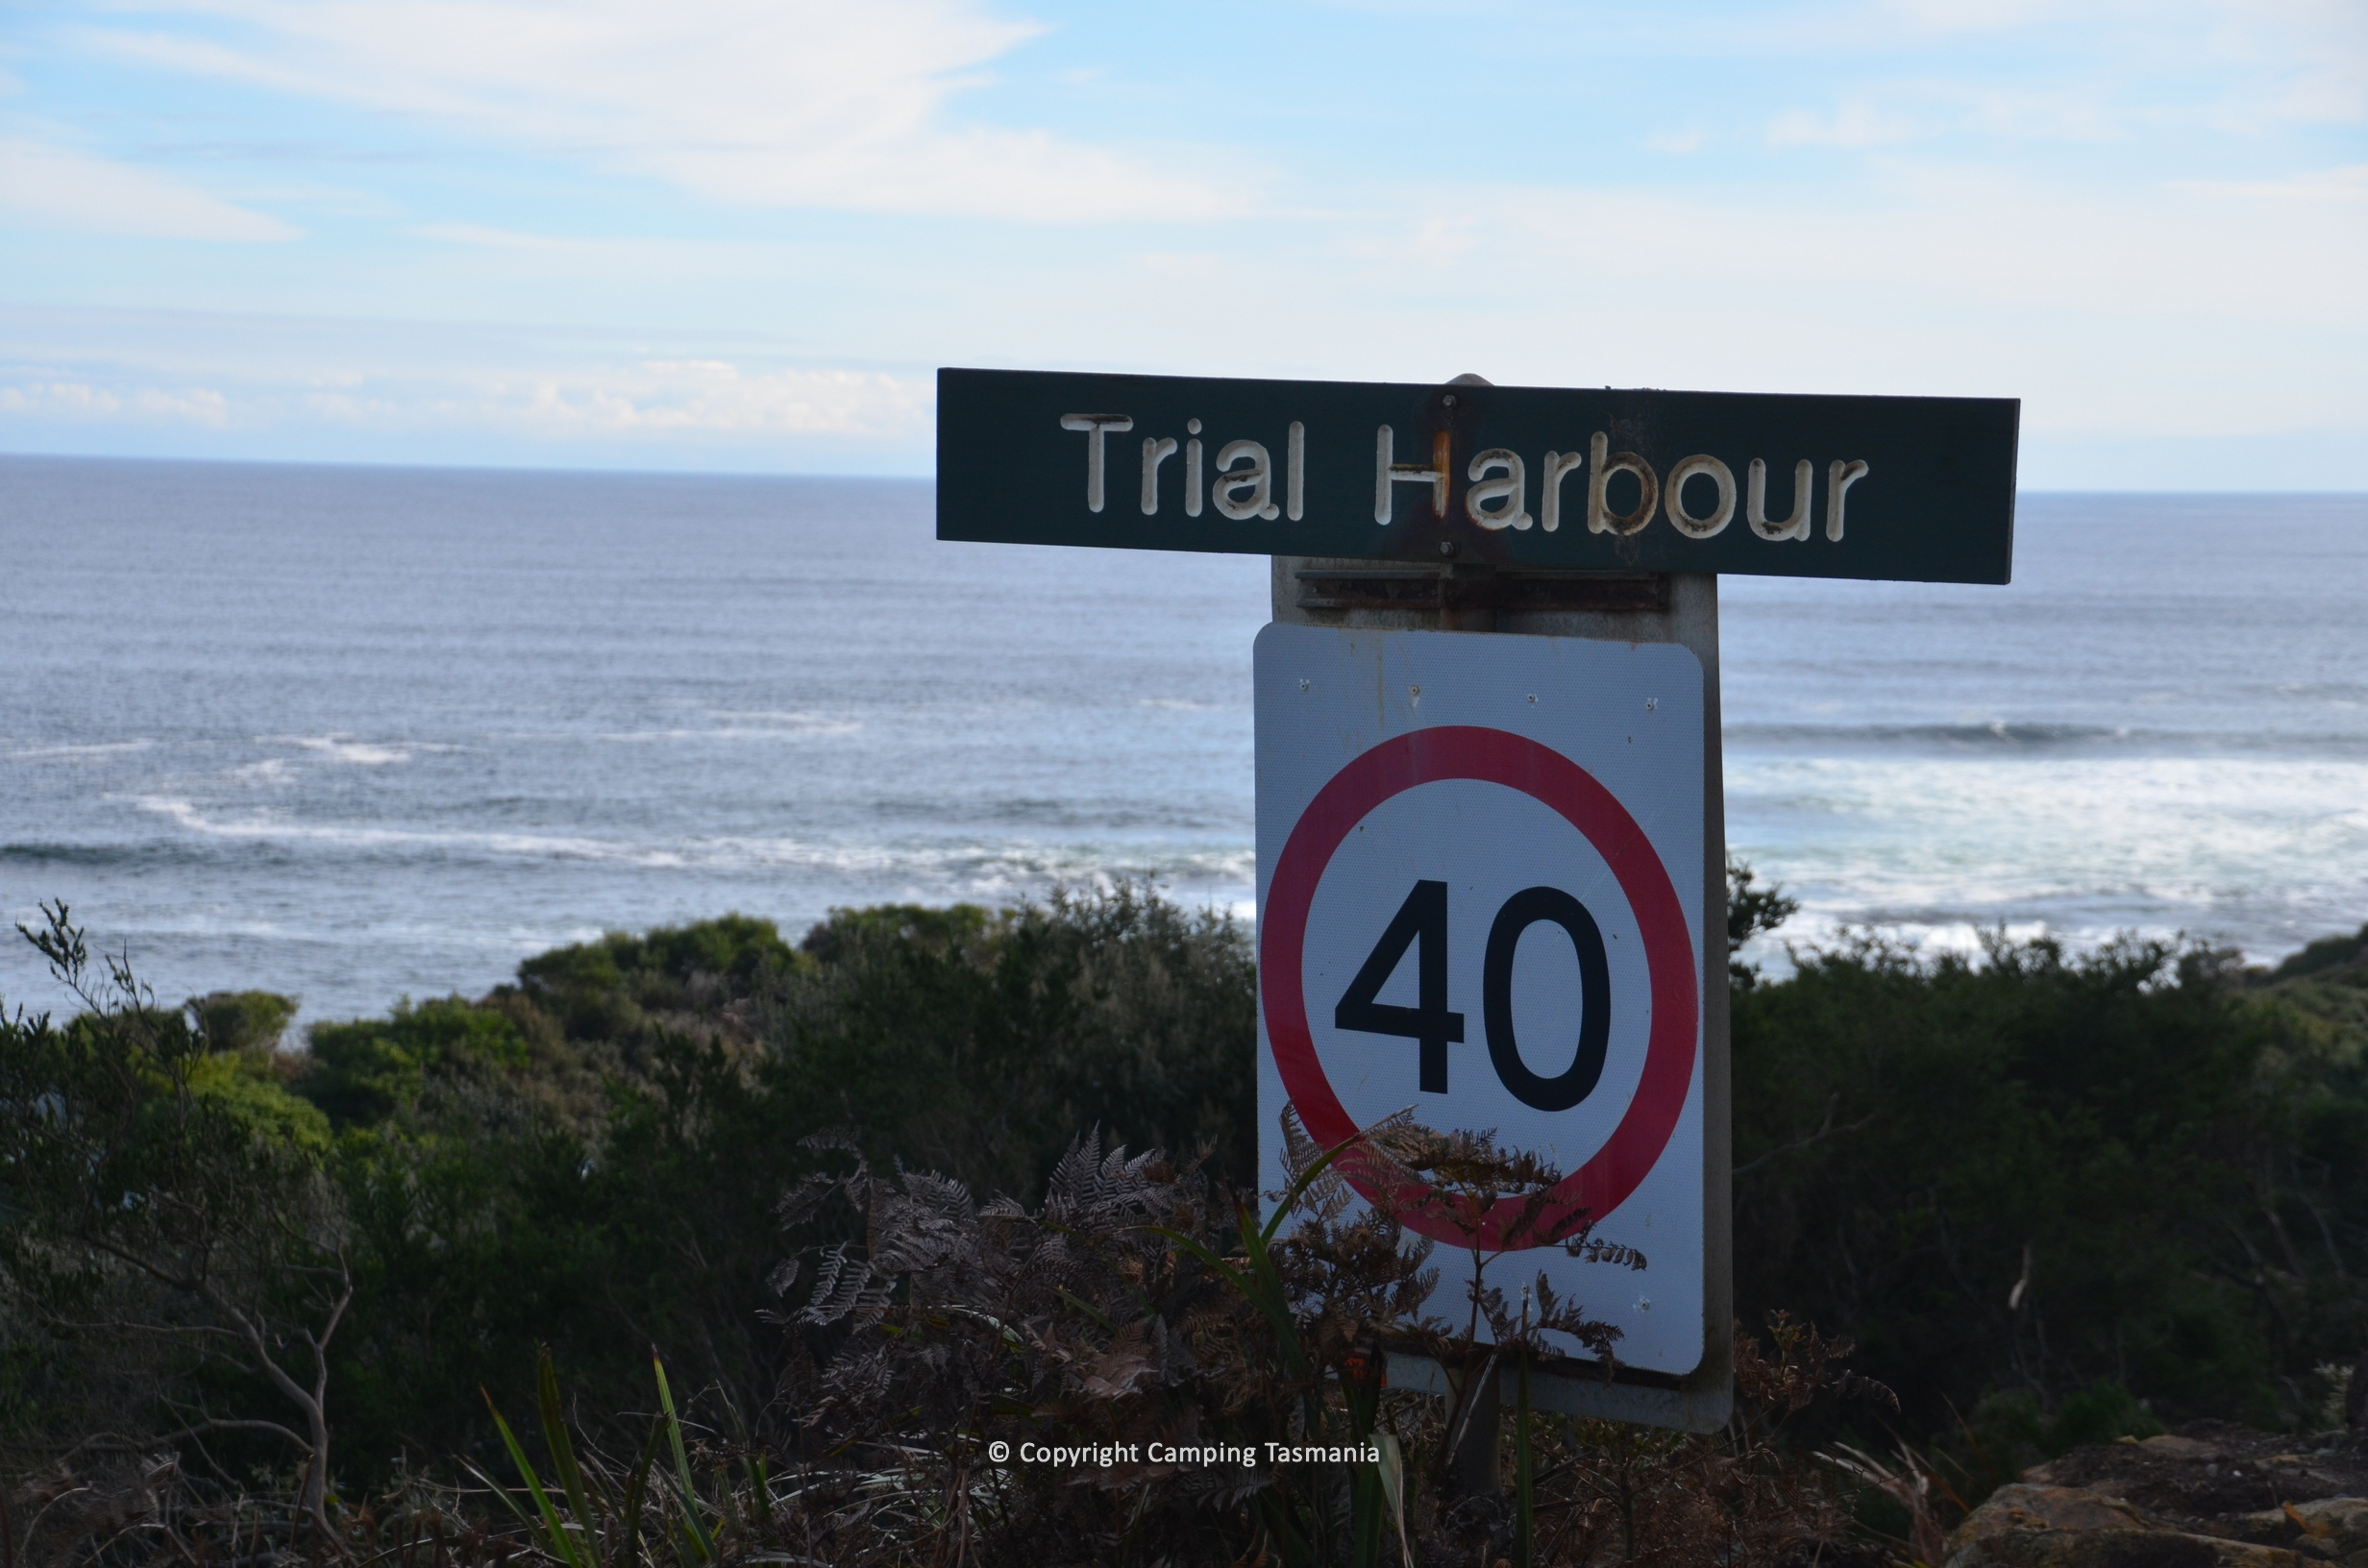 trial-harbour-002.jpg